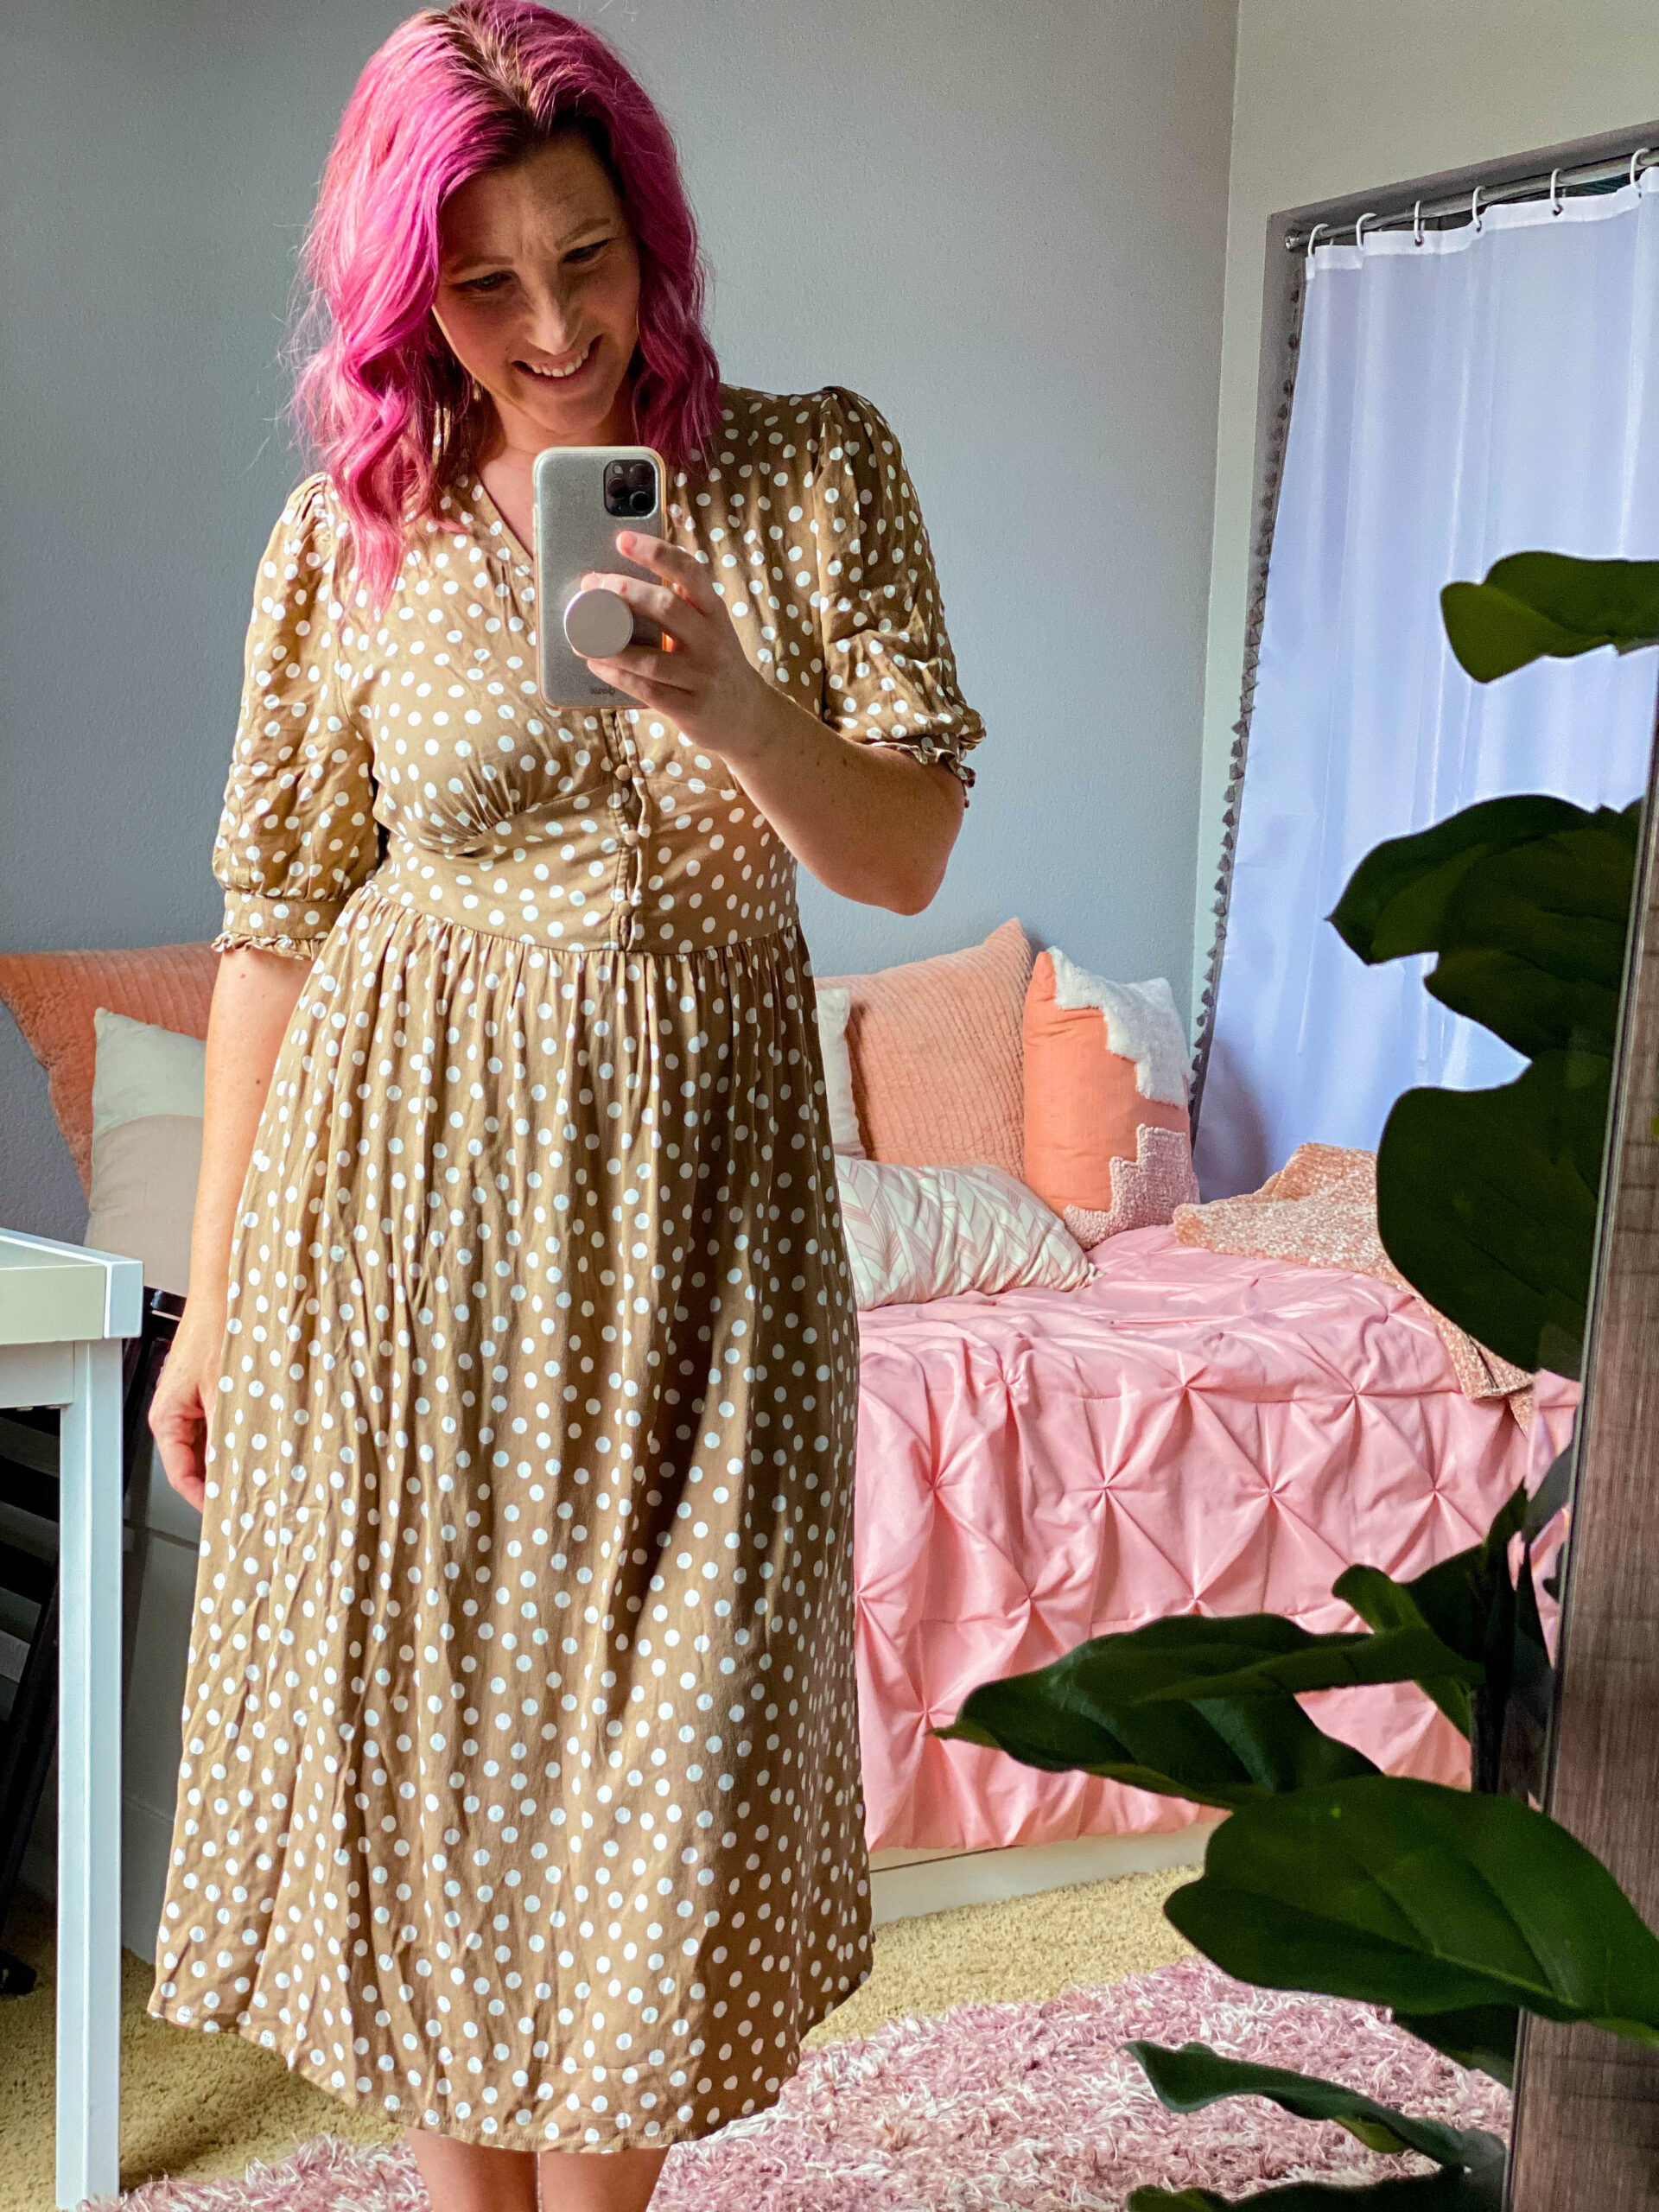 Looking for a great midi sundress? This polka dot one is adorable!